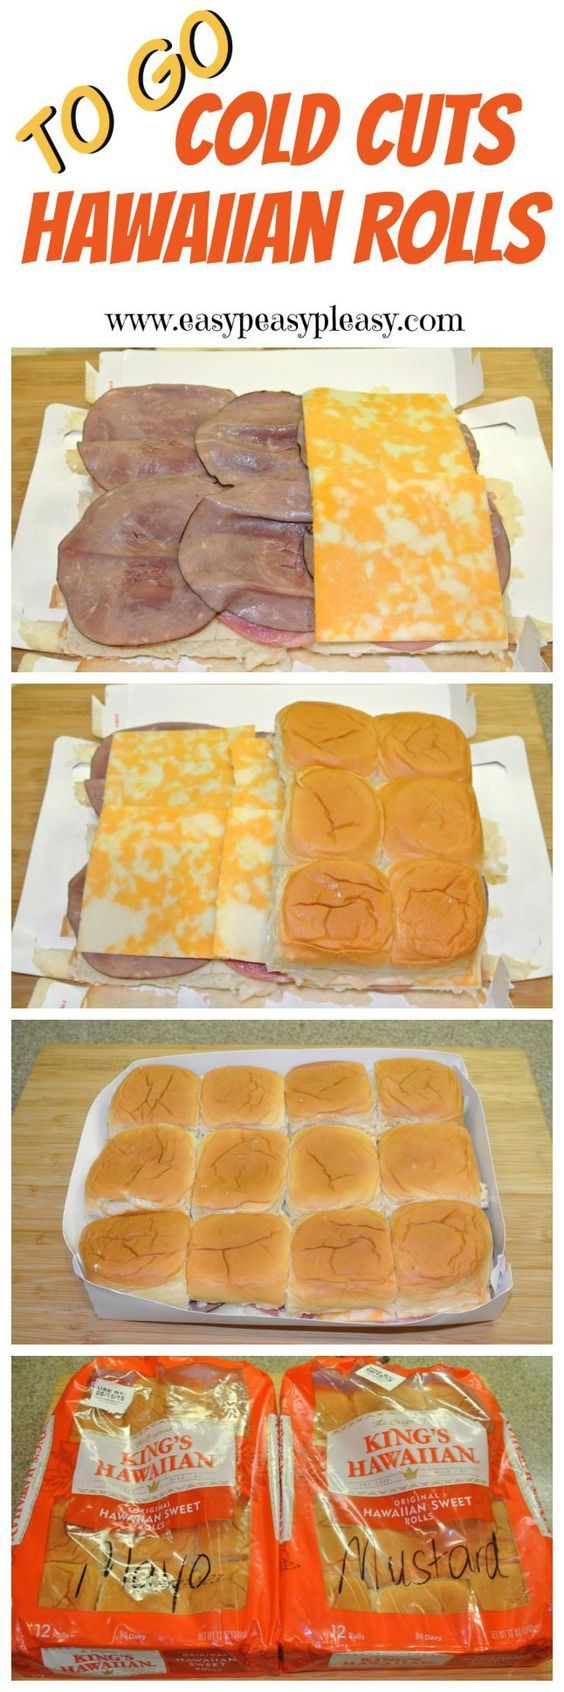 Easy to Make Ham, Roast Beef and Pastrami Sandwiches your cooler. Turkey, Chicken or Egg Salad would work great too.